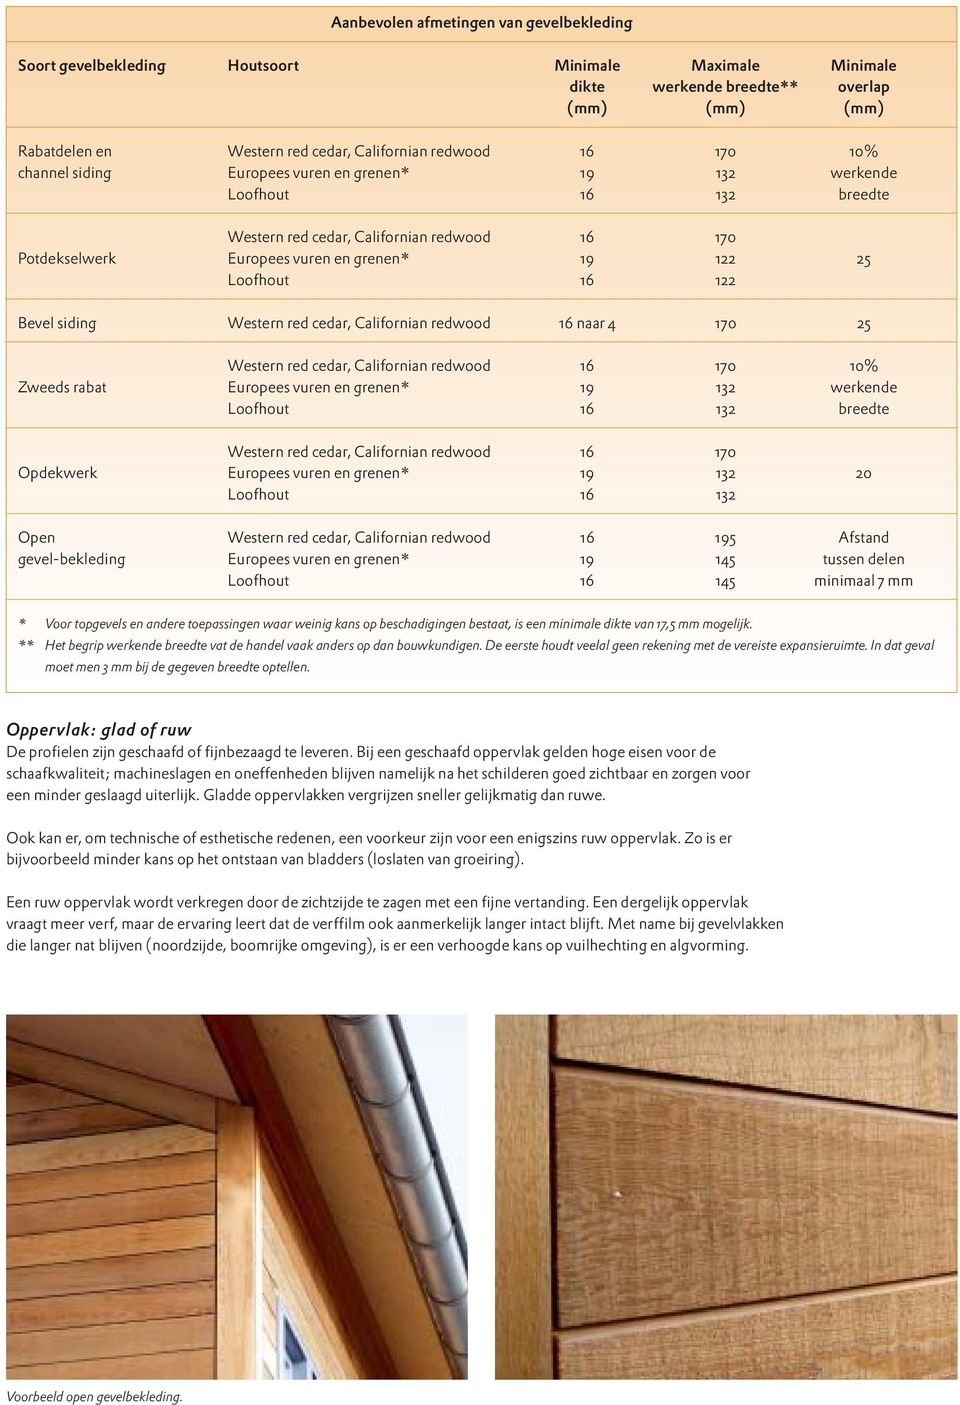 122 Bevel siding Western red cedar, Californian redwood 16 naar 4 170 25 Western red cedar, Californian redwood 16 170 10% Zweeds rabat Europees vuren en grenen* 19 132 werkende Loofhout 16 132